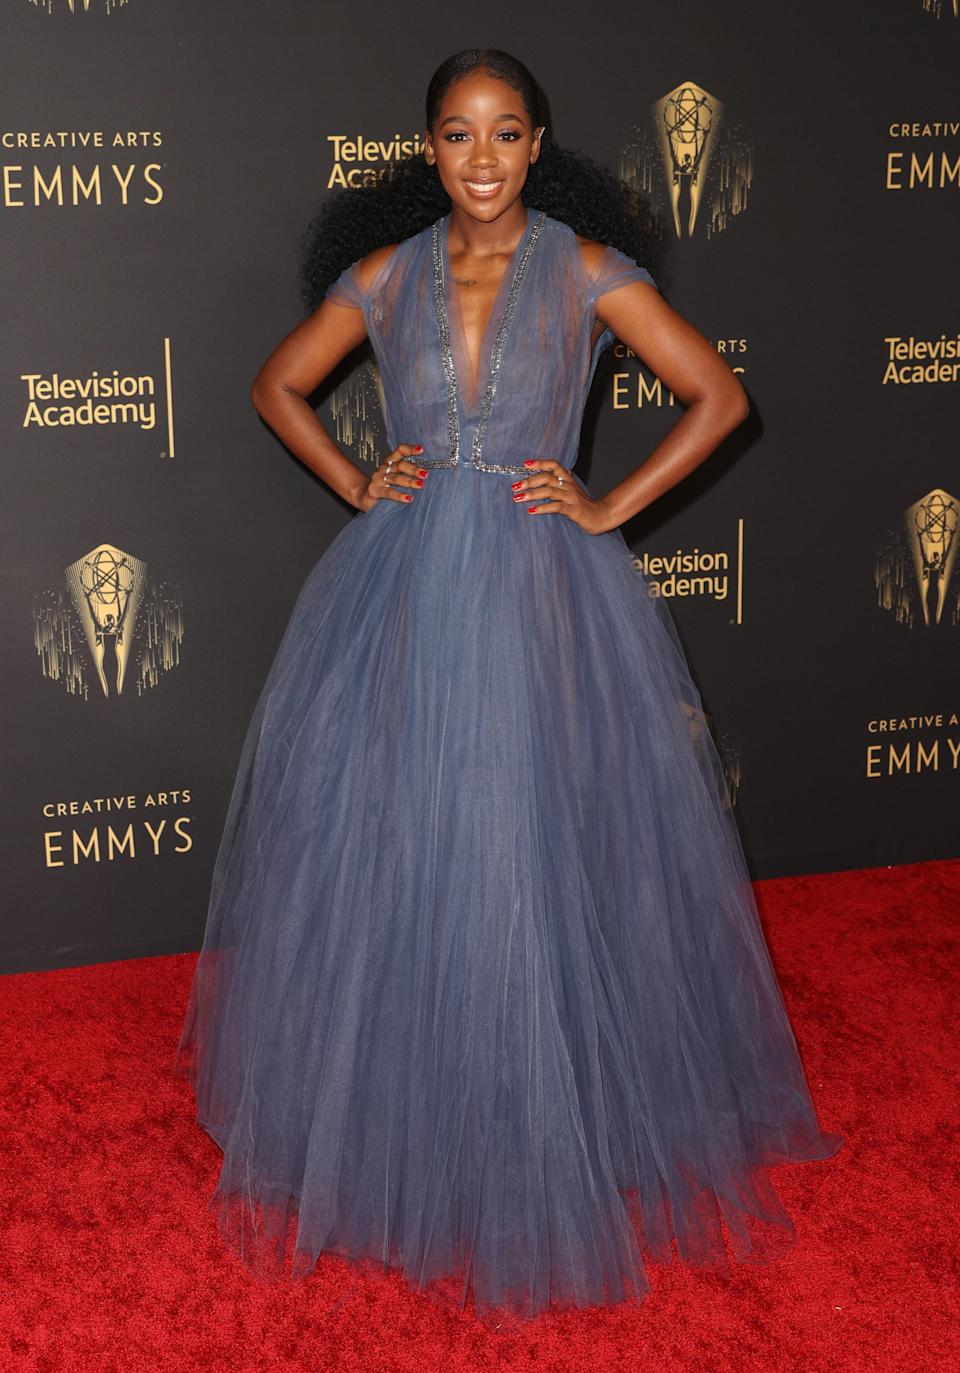 The actor wore a dusty blue tulle gown with sparkly silver piping and kept the glam moment going with a classic red manicure.